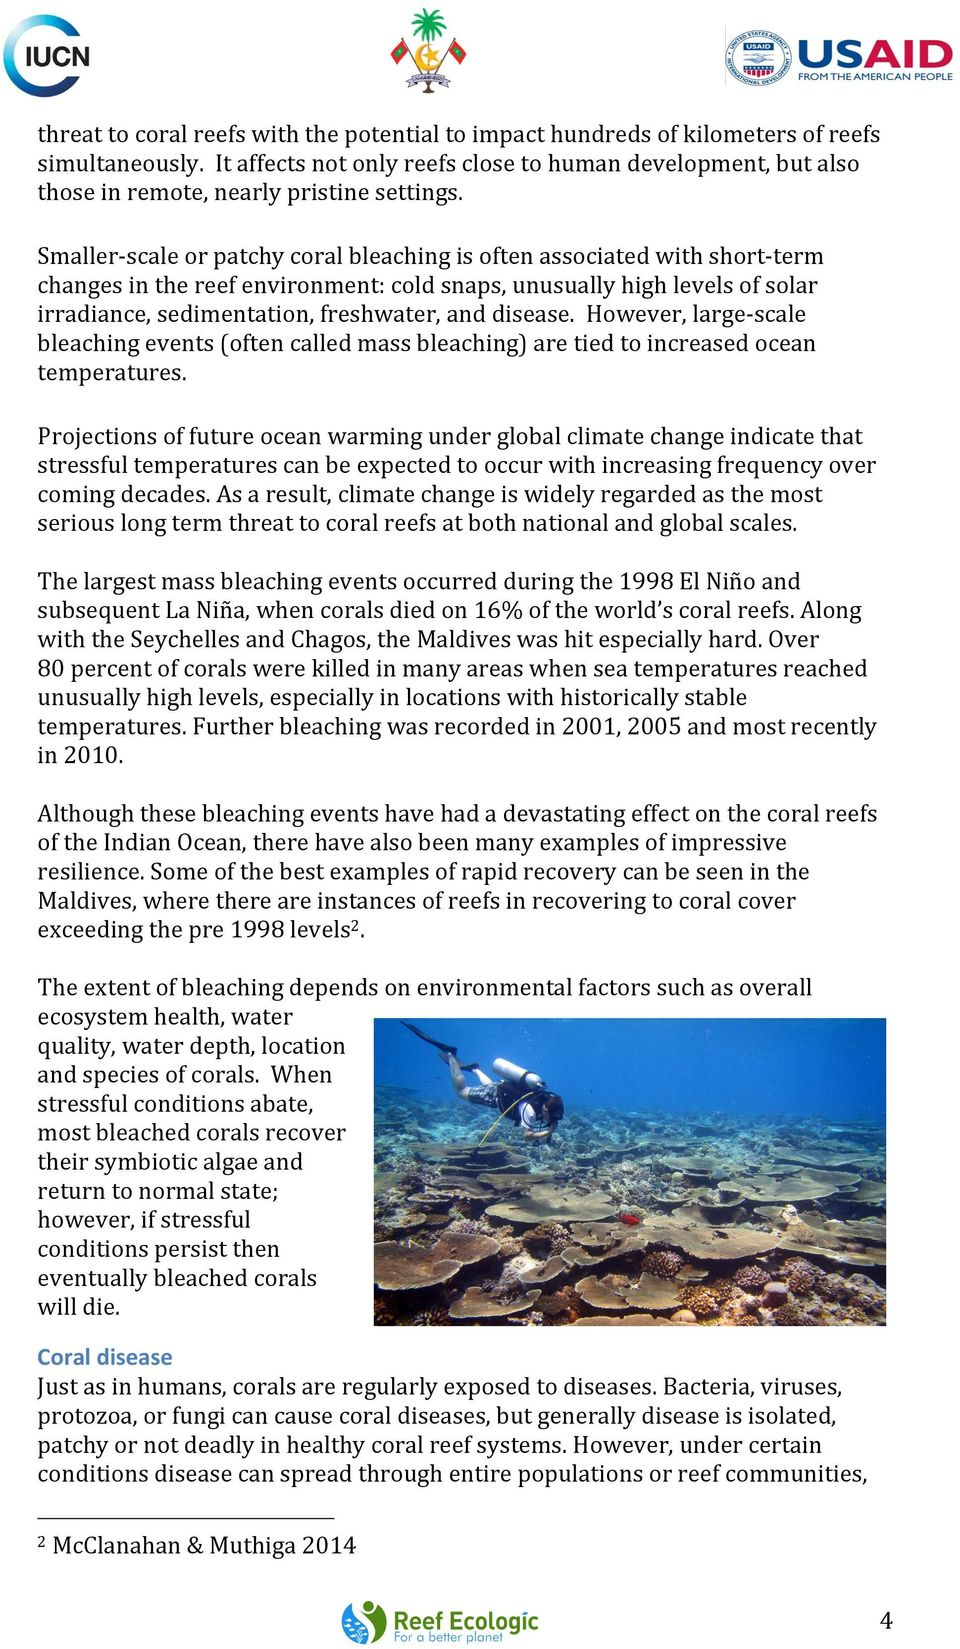 Smaller- scale or patchy coral bleaching is often associated with short- term changes in the reef environment: cold snaps, unusually high levels of solar irradiance, sedimentation, freshwater, and